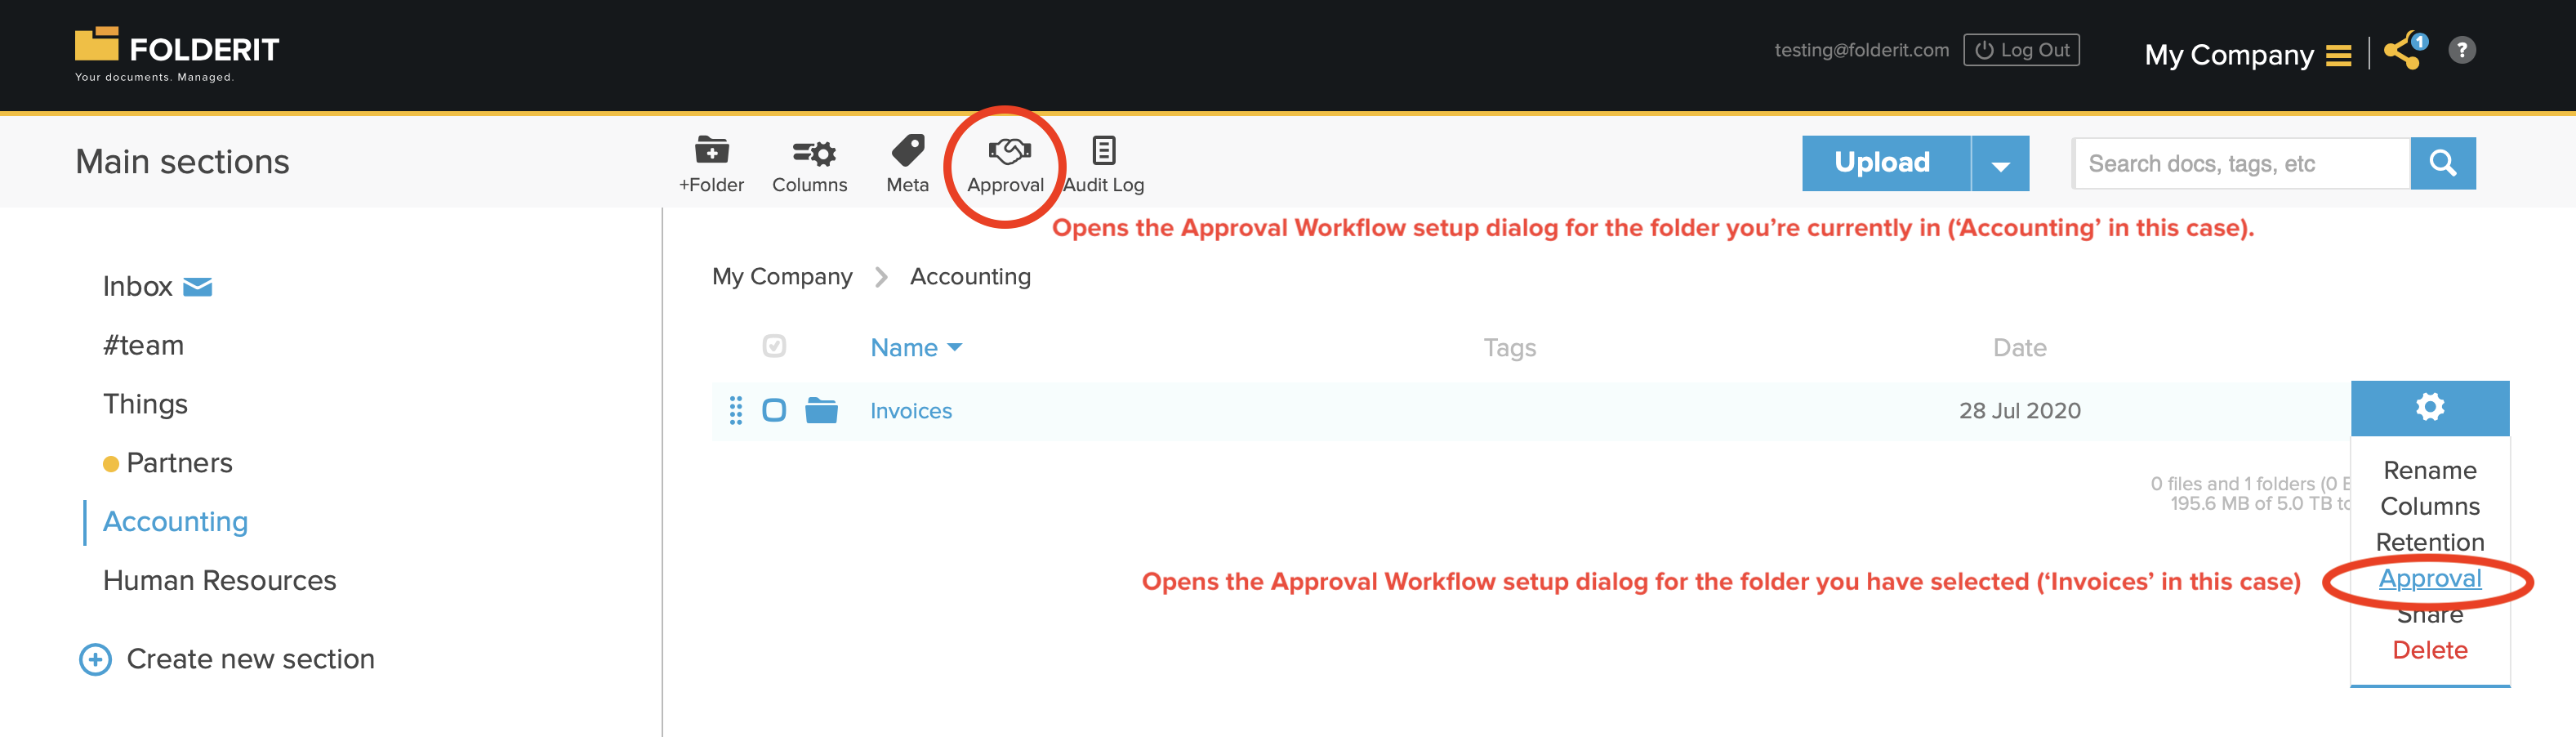 Setting up folder-level approval workflow automation